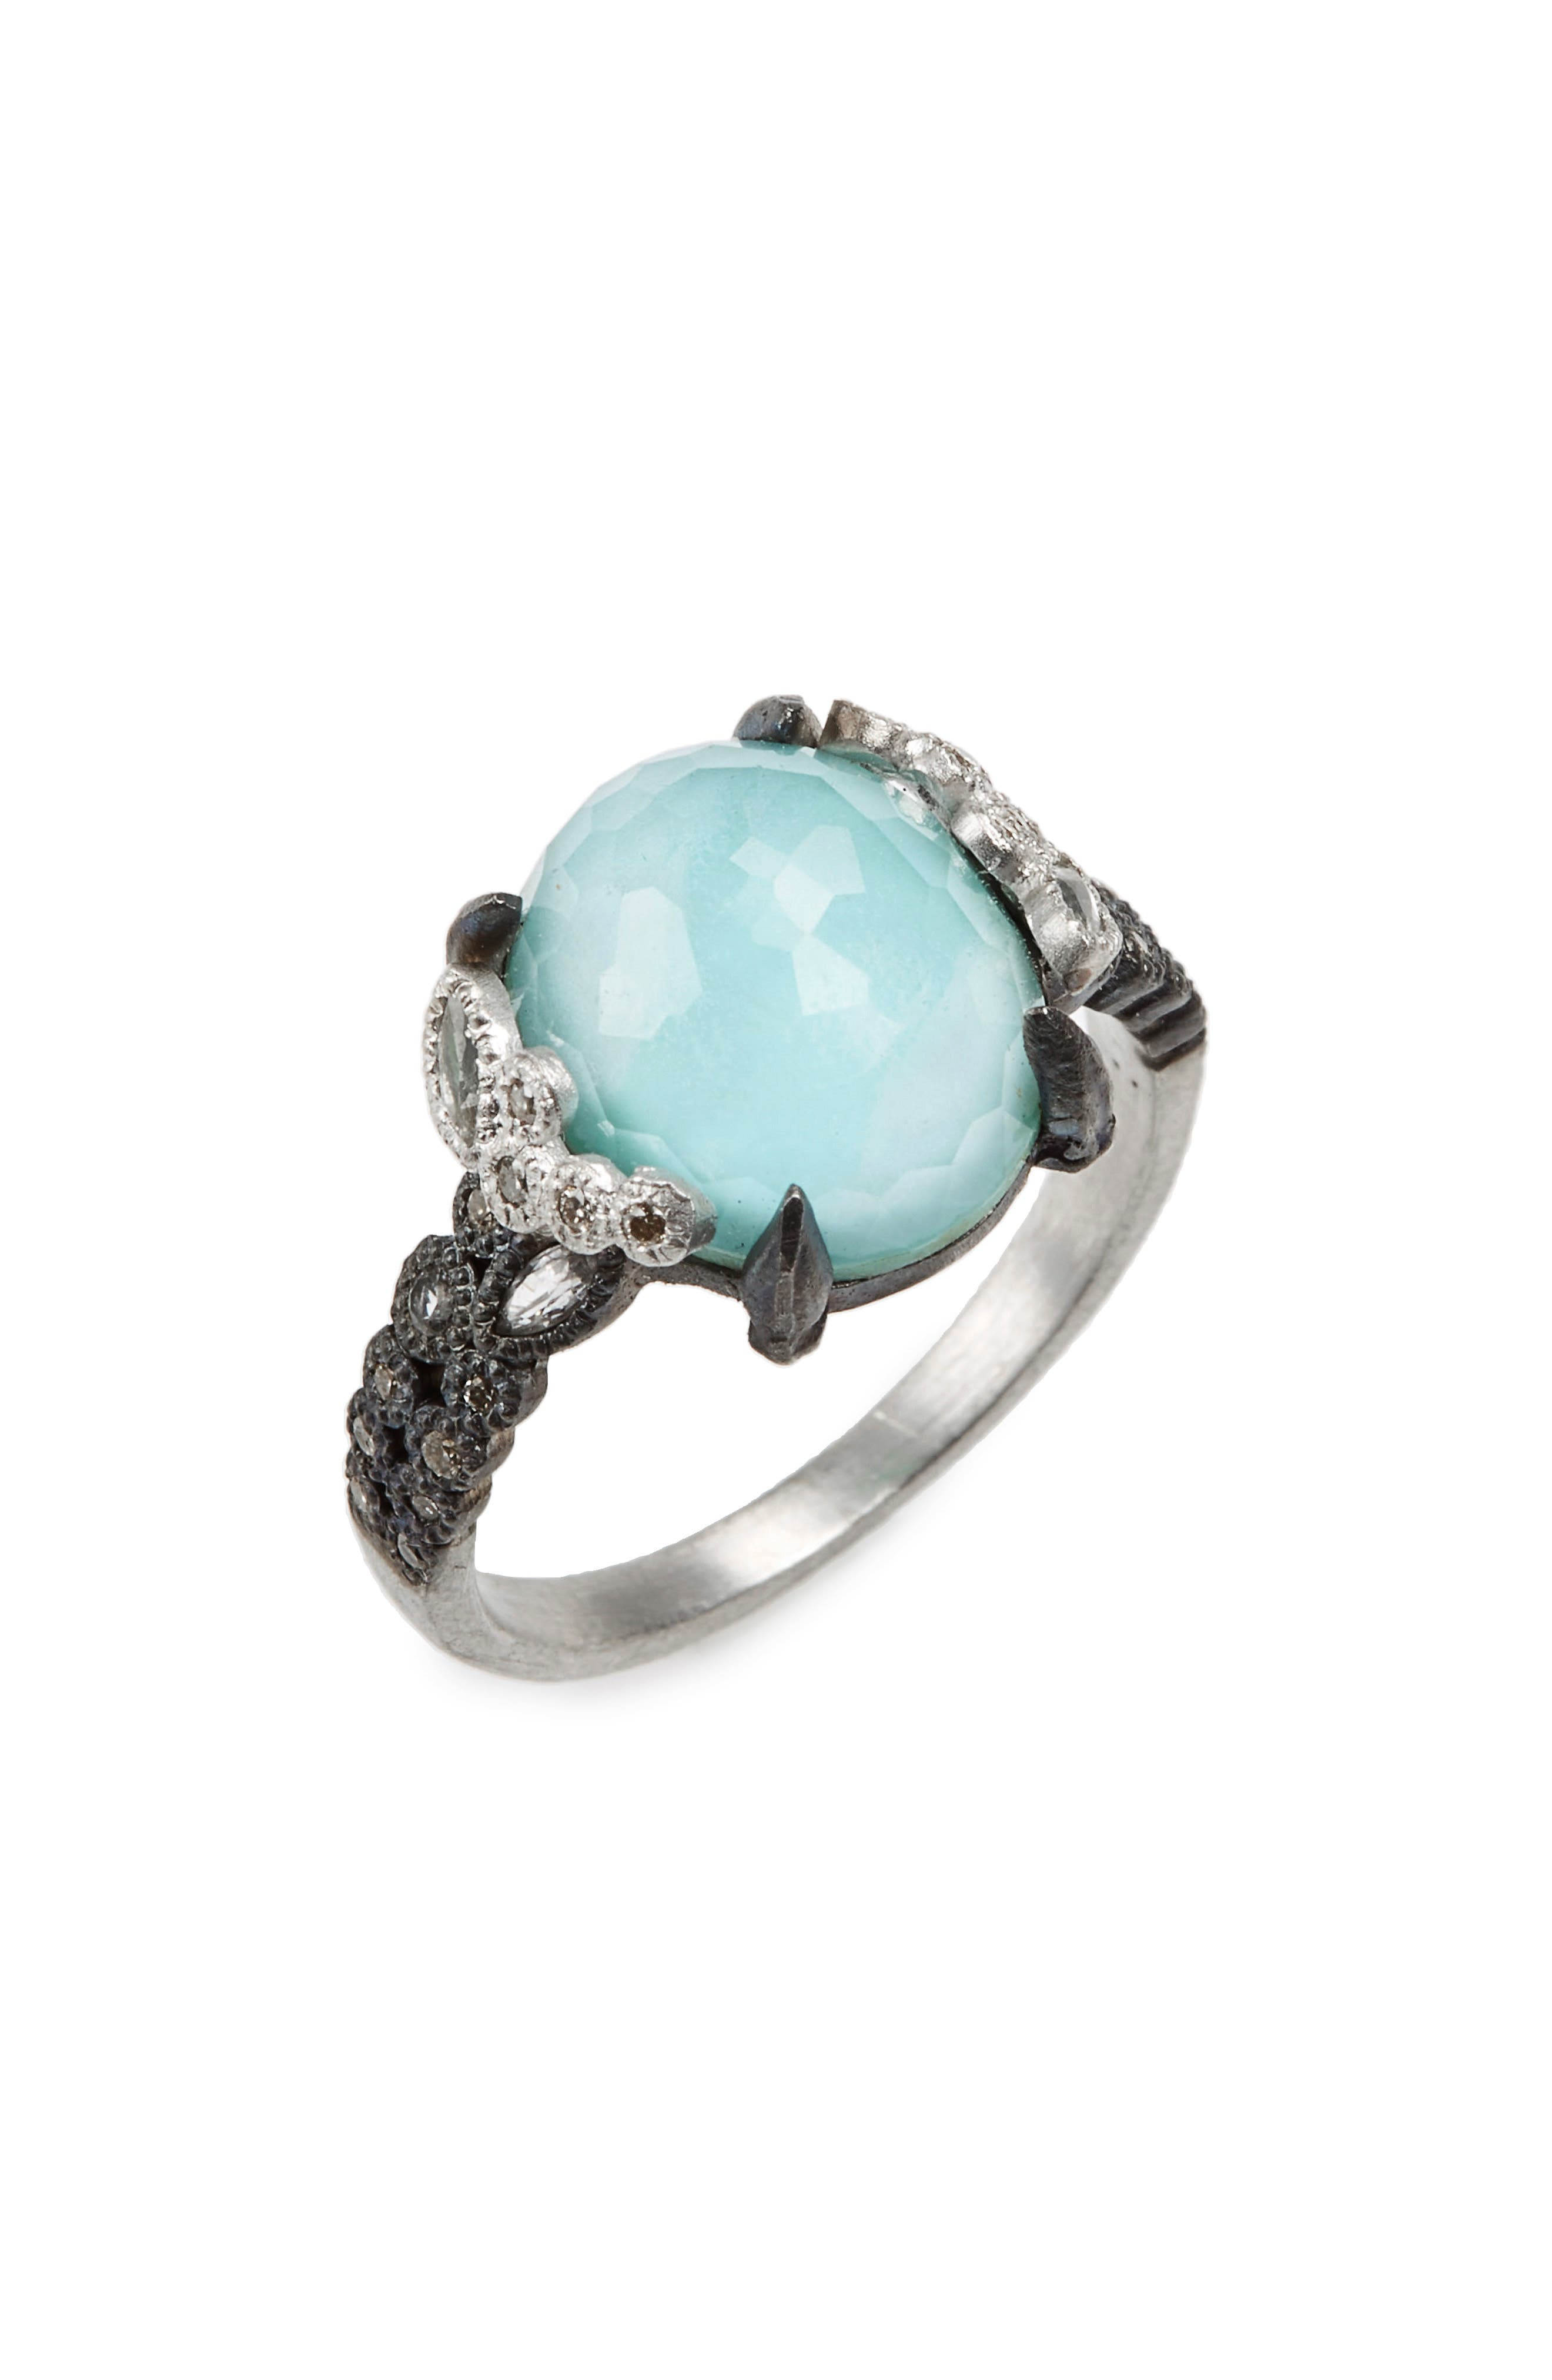 New World Crivelli Turquoise & Diamond Ring,                             Main thumbnail 1, color,                             SILVER/ TURQUOISE